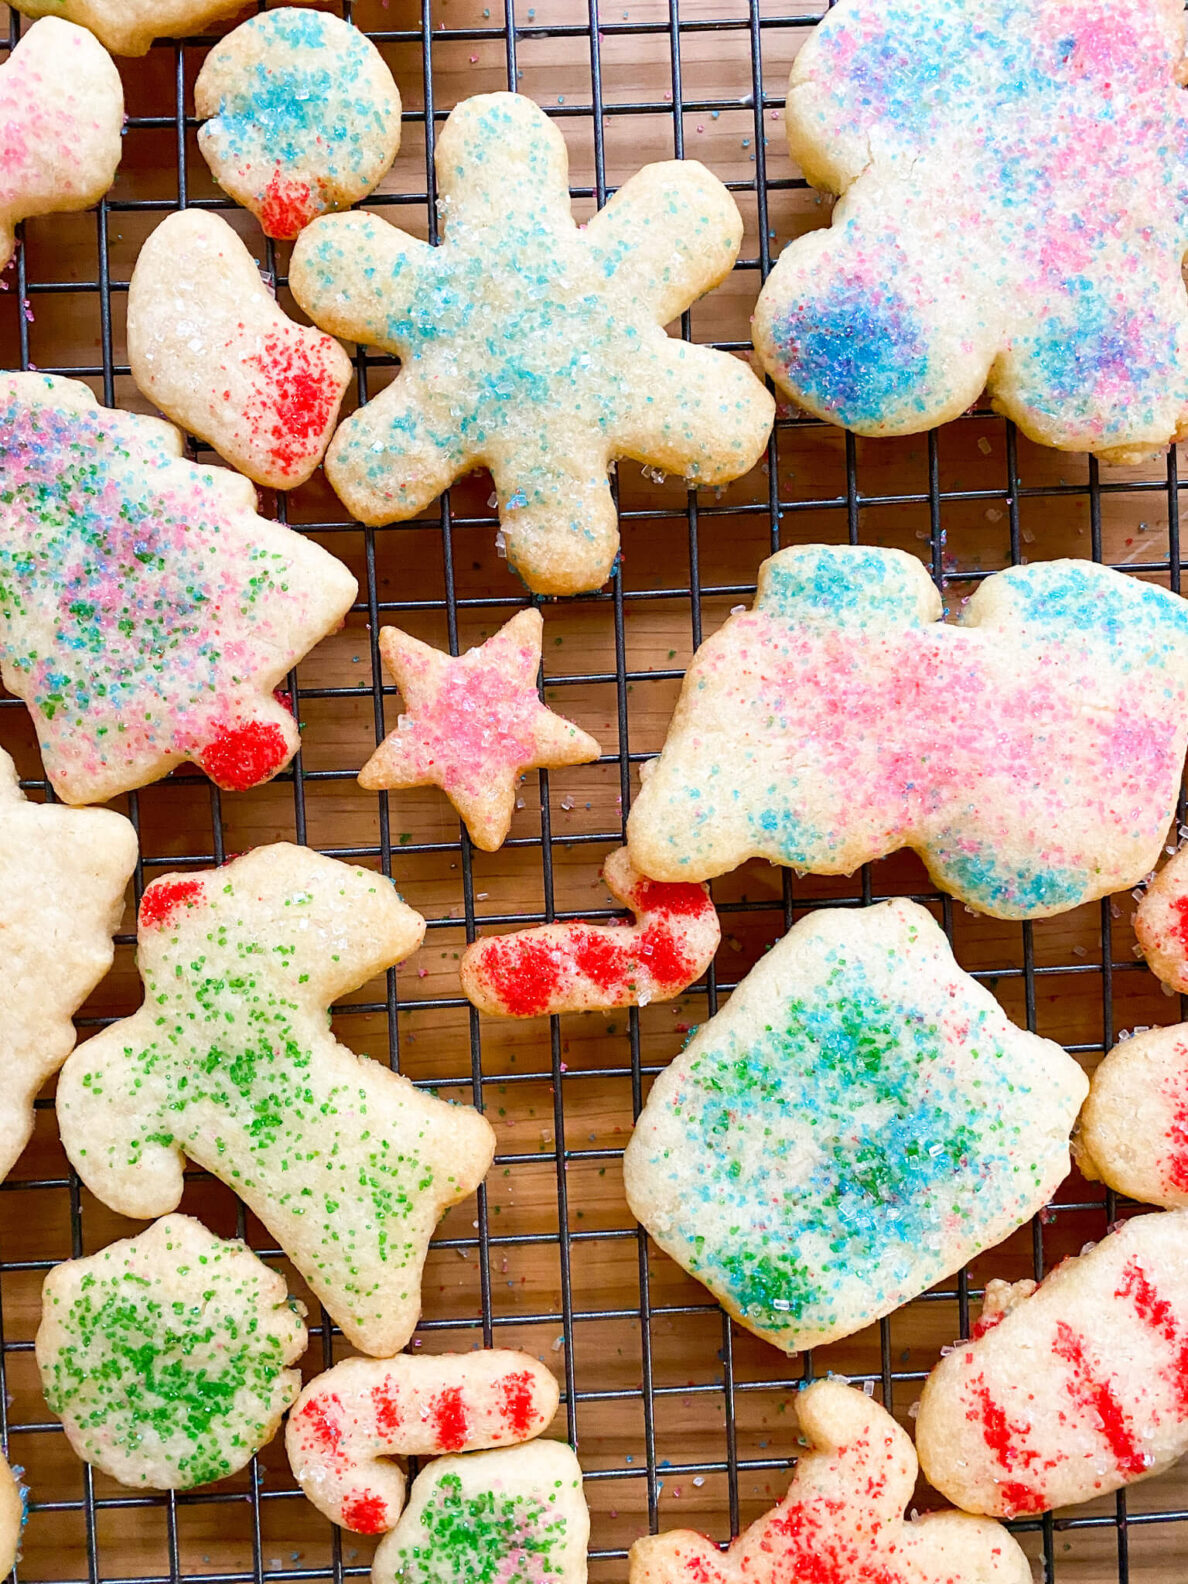 Kate's Safe and Sweet - Rolled Sugar Cookies Out of Oven